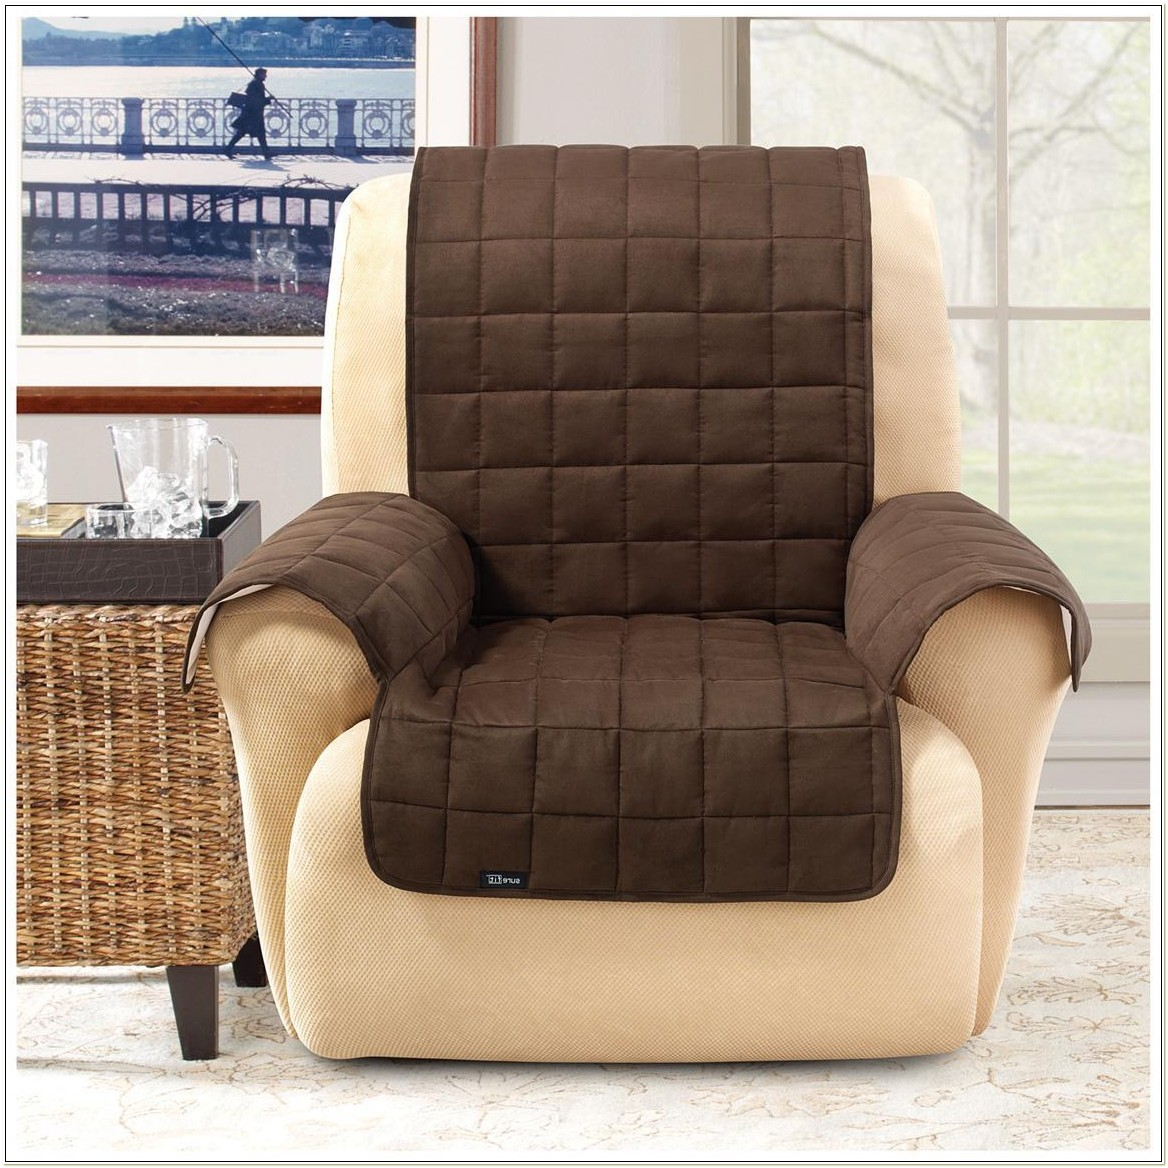 Pet Covers For Recliner Chairs